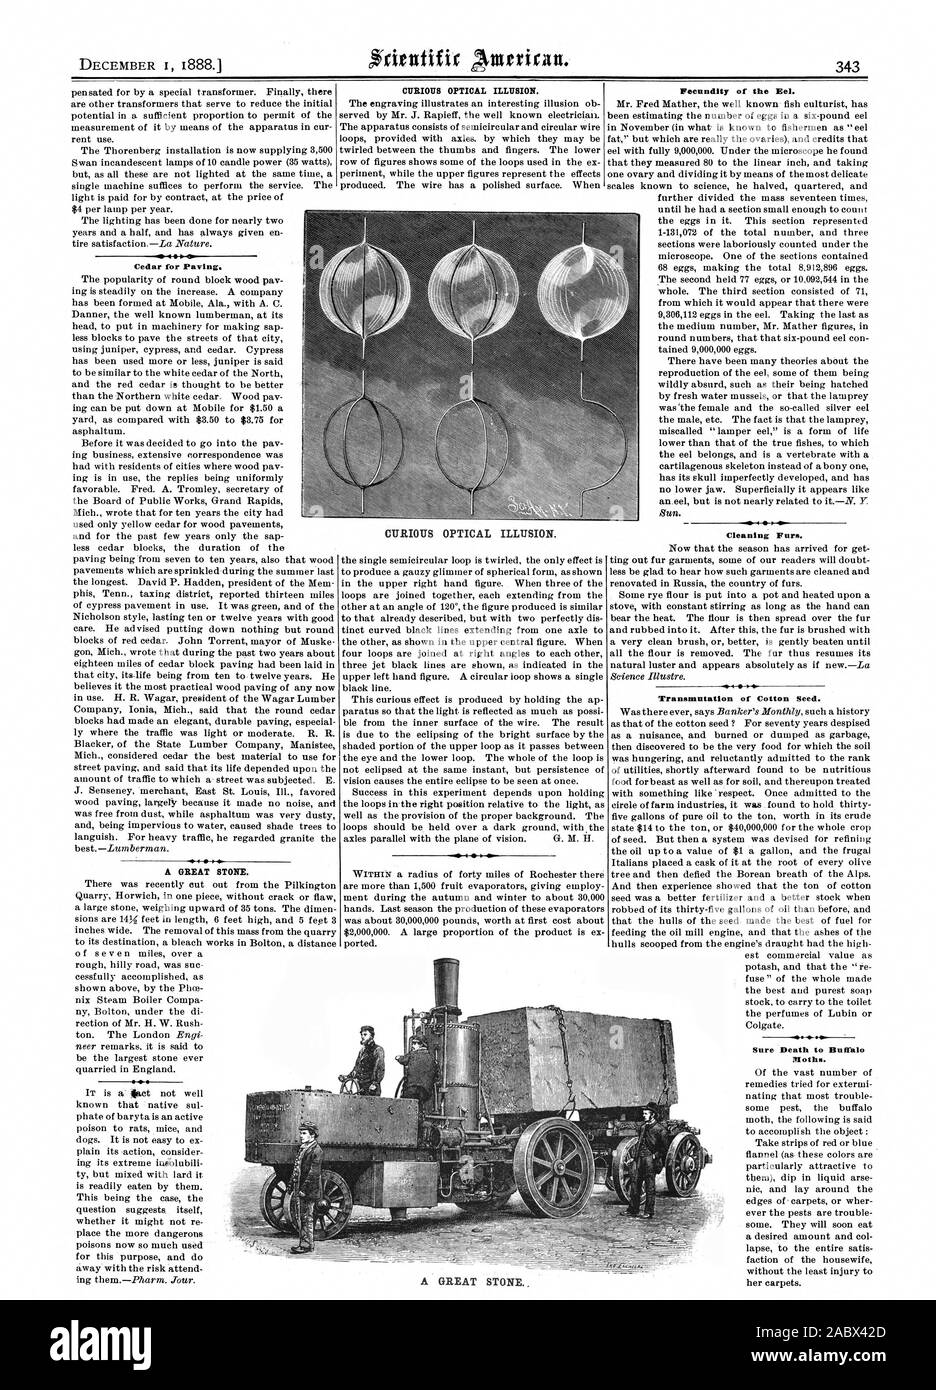 Cedar for Paving. A GREAT STONE. CURIOUS OPTICAL ILLUSION. Fecundity of the Eel. Cleaning Furs. Transmutation of Cotton Seed. CURIOUS OPTICAL ILLUSION. A GREAT STONE, scientific american, 1888-12-01 Stock Photo